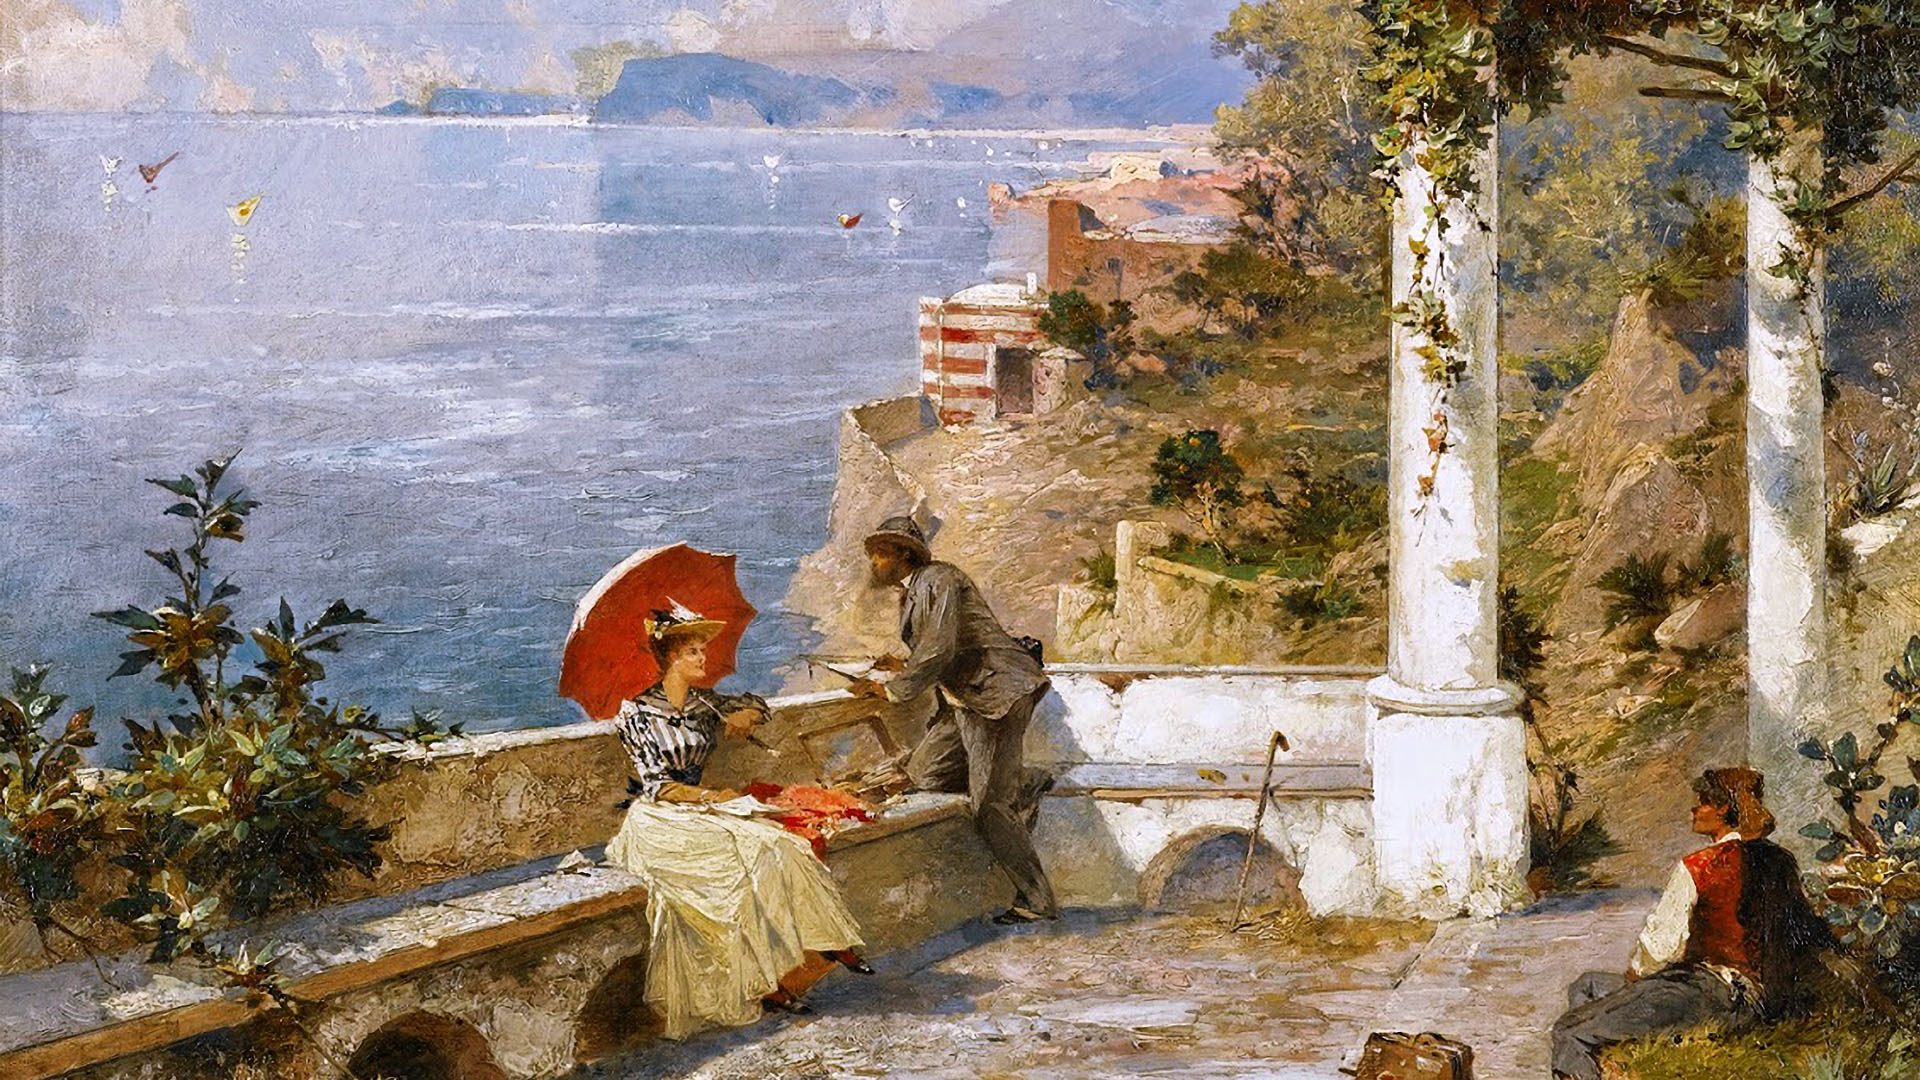 Franz Richard Unterberger - Amalfi Coast 1920x1080